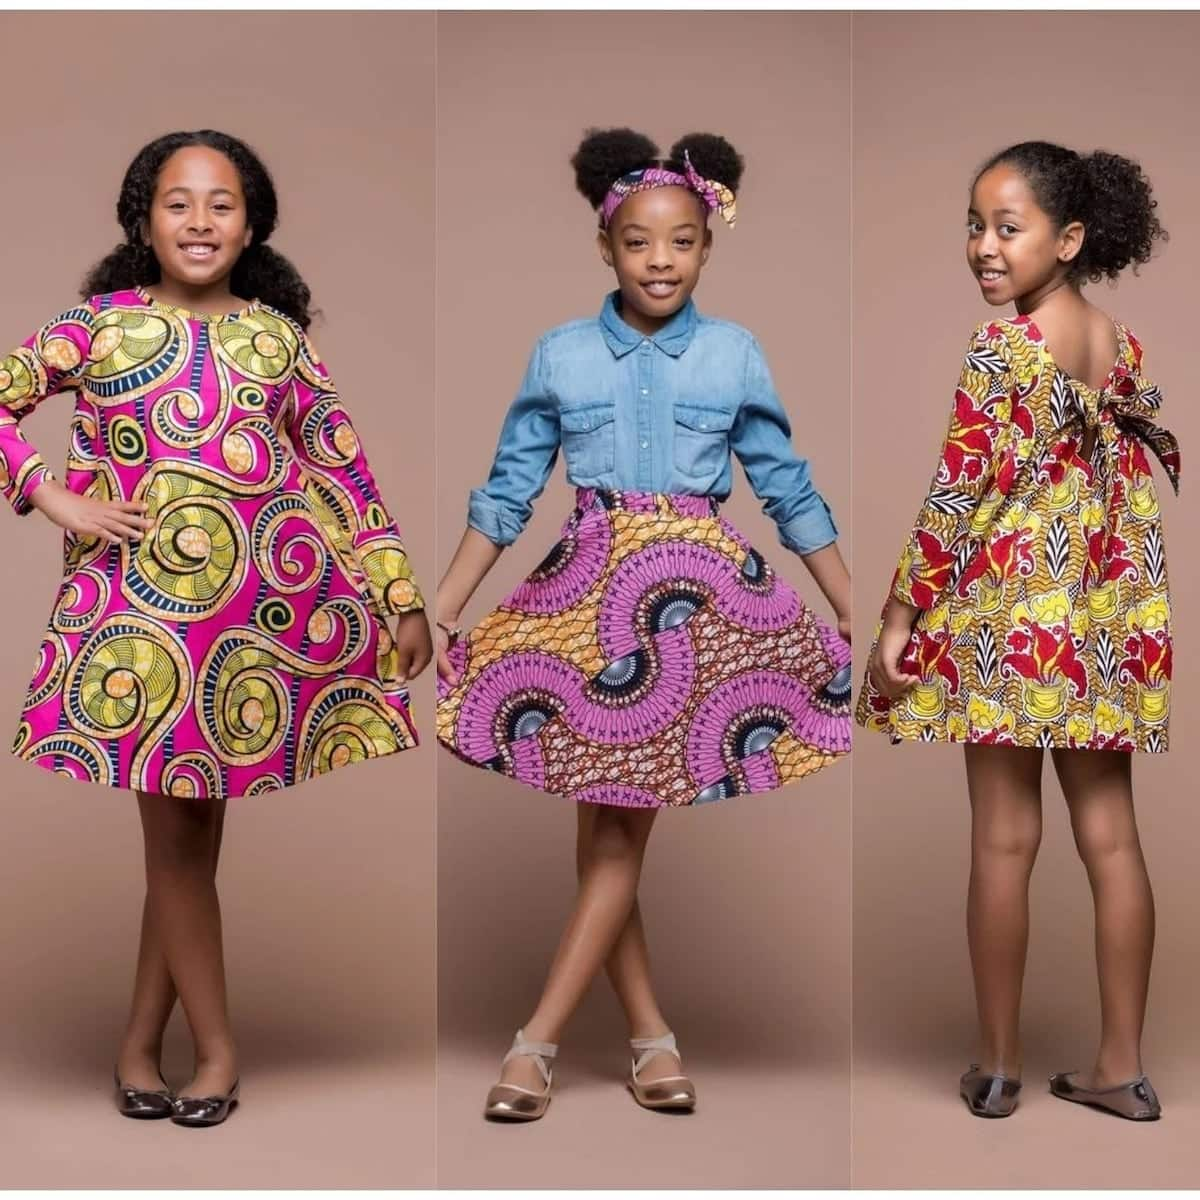 87949a3ccbd08e ankara styles for girl child, ankara styles for teenagers, ankara styles  for little girl